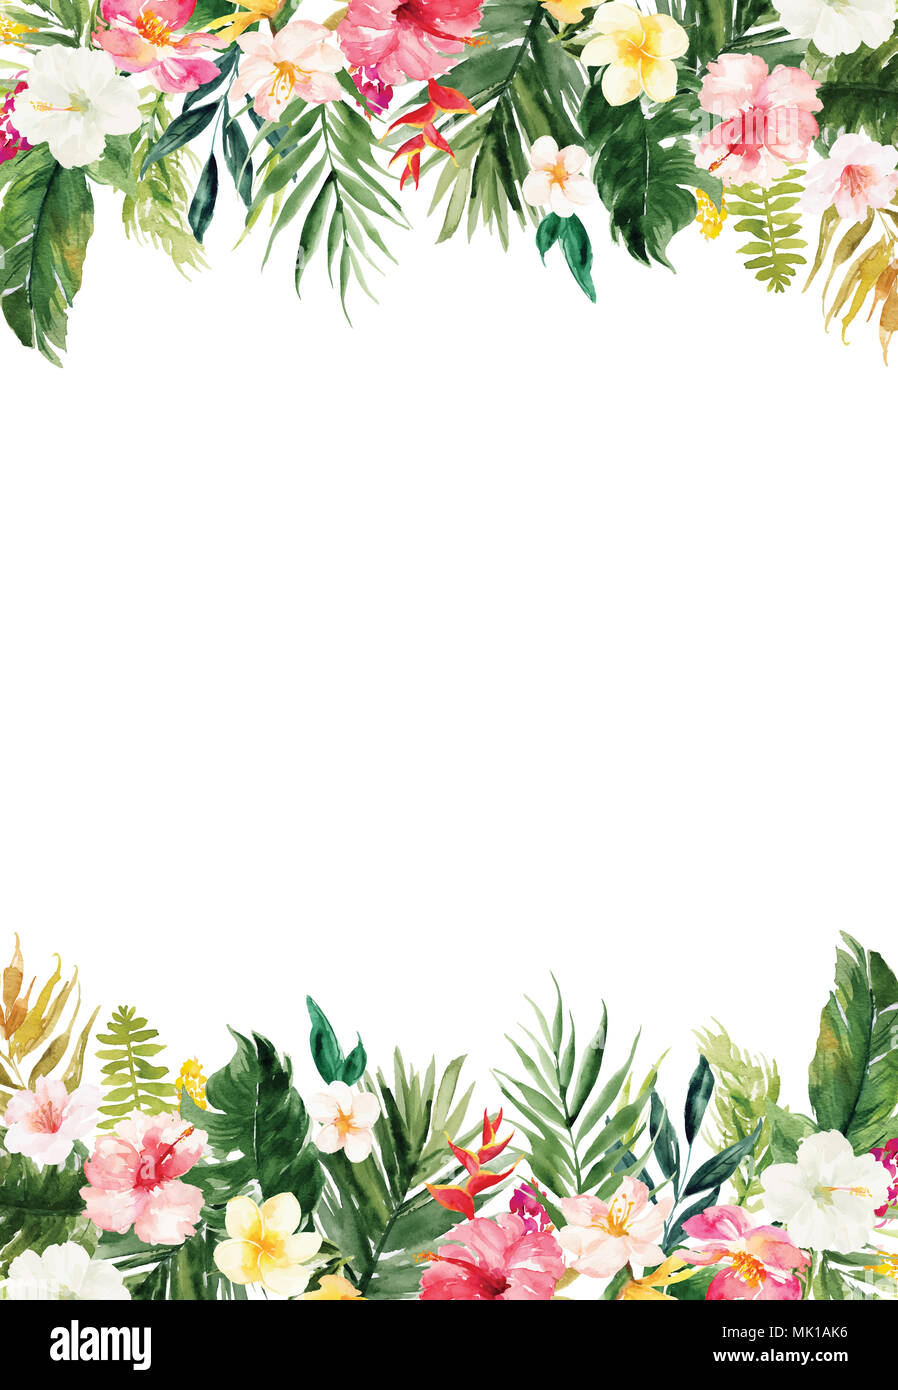 the vertical white blank paper background with colorful